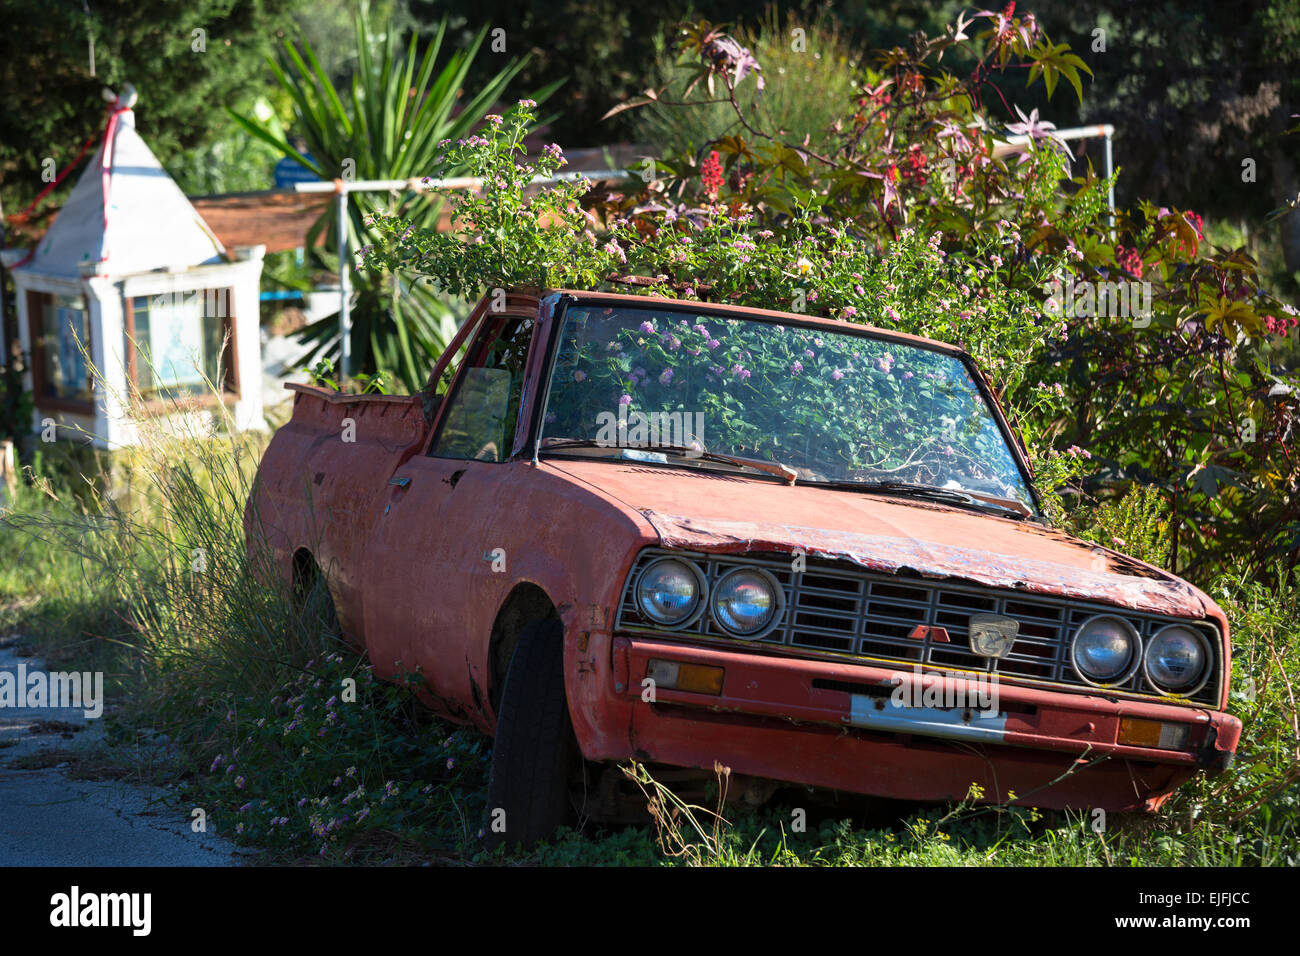 Derelict rusty car, a sign of economic crisis and downturn, in Corfu, Greece - Stock Image